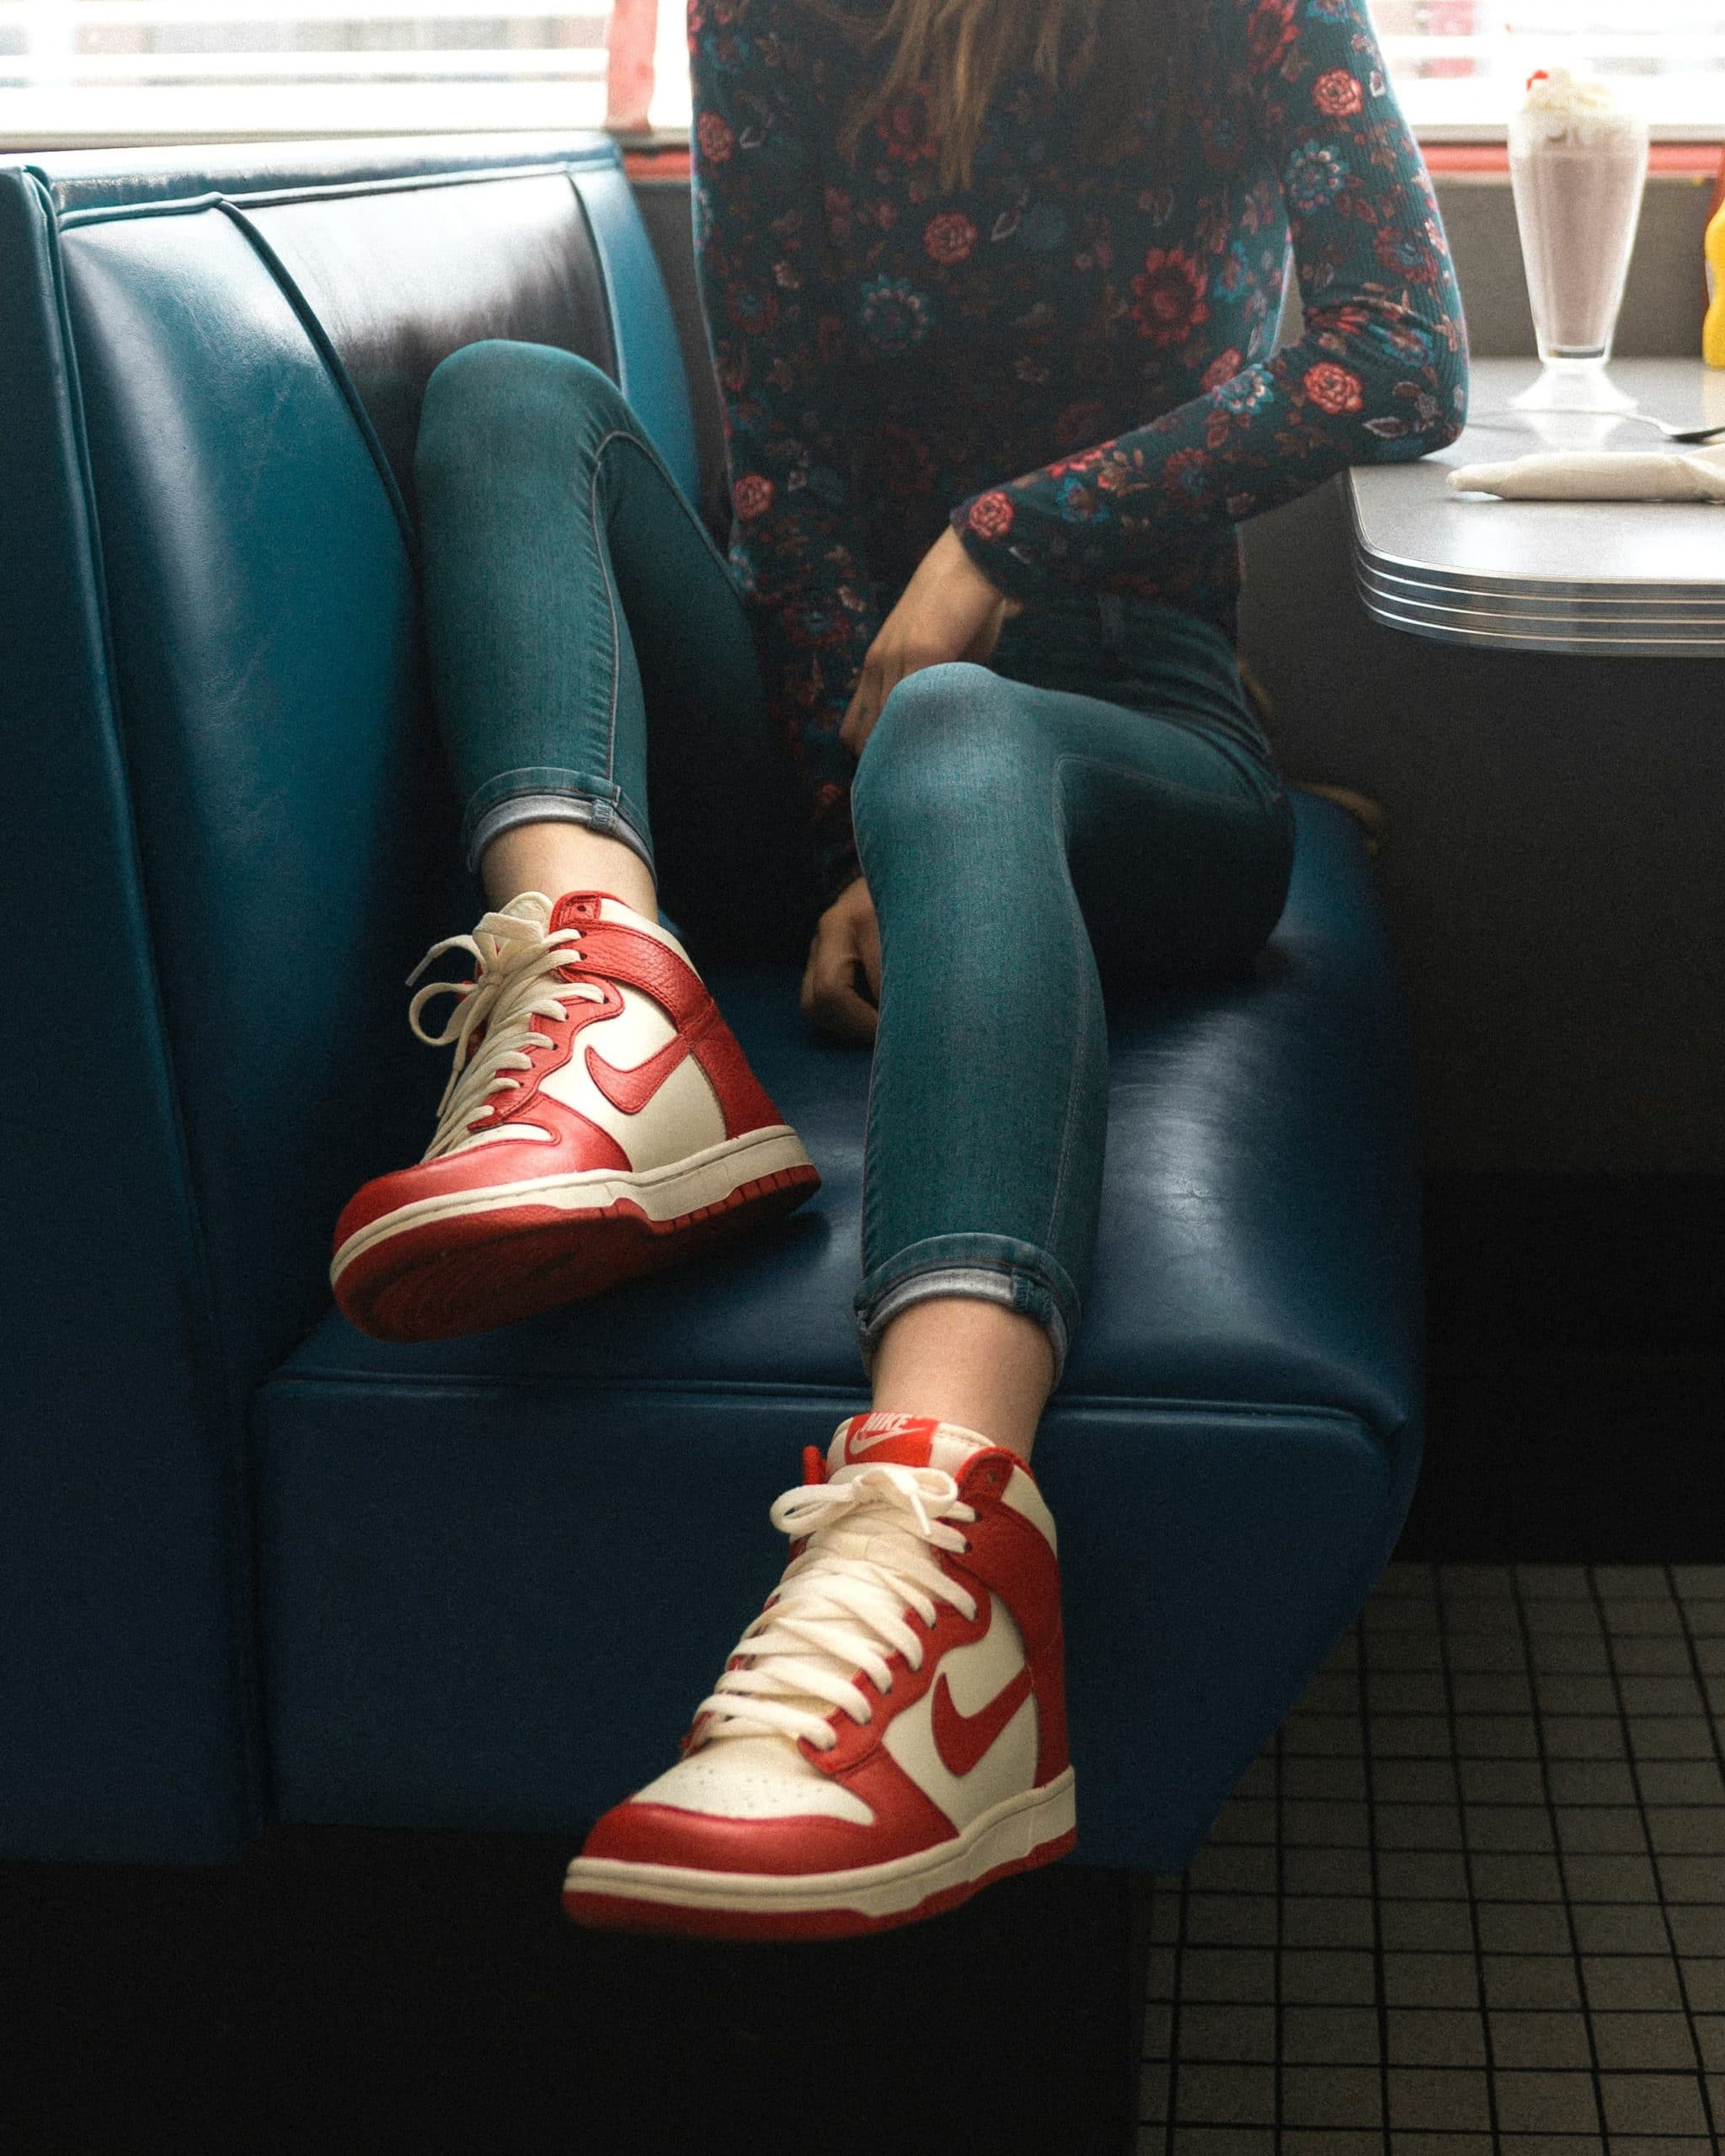 Beautiful Young Woman Sitting in a Diner posing showing her legs un skinny jeans and sneakers